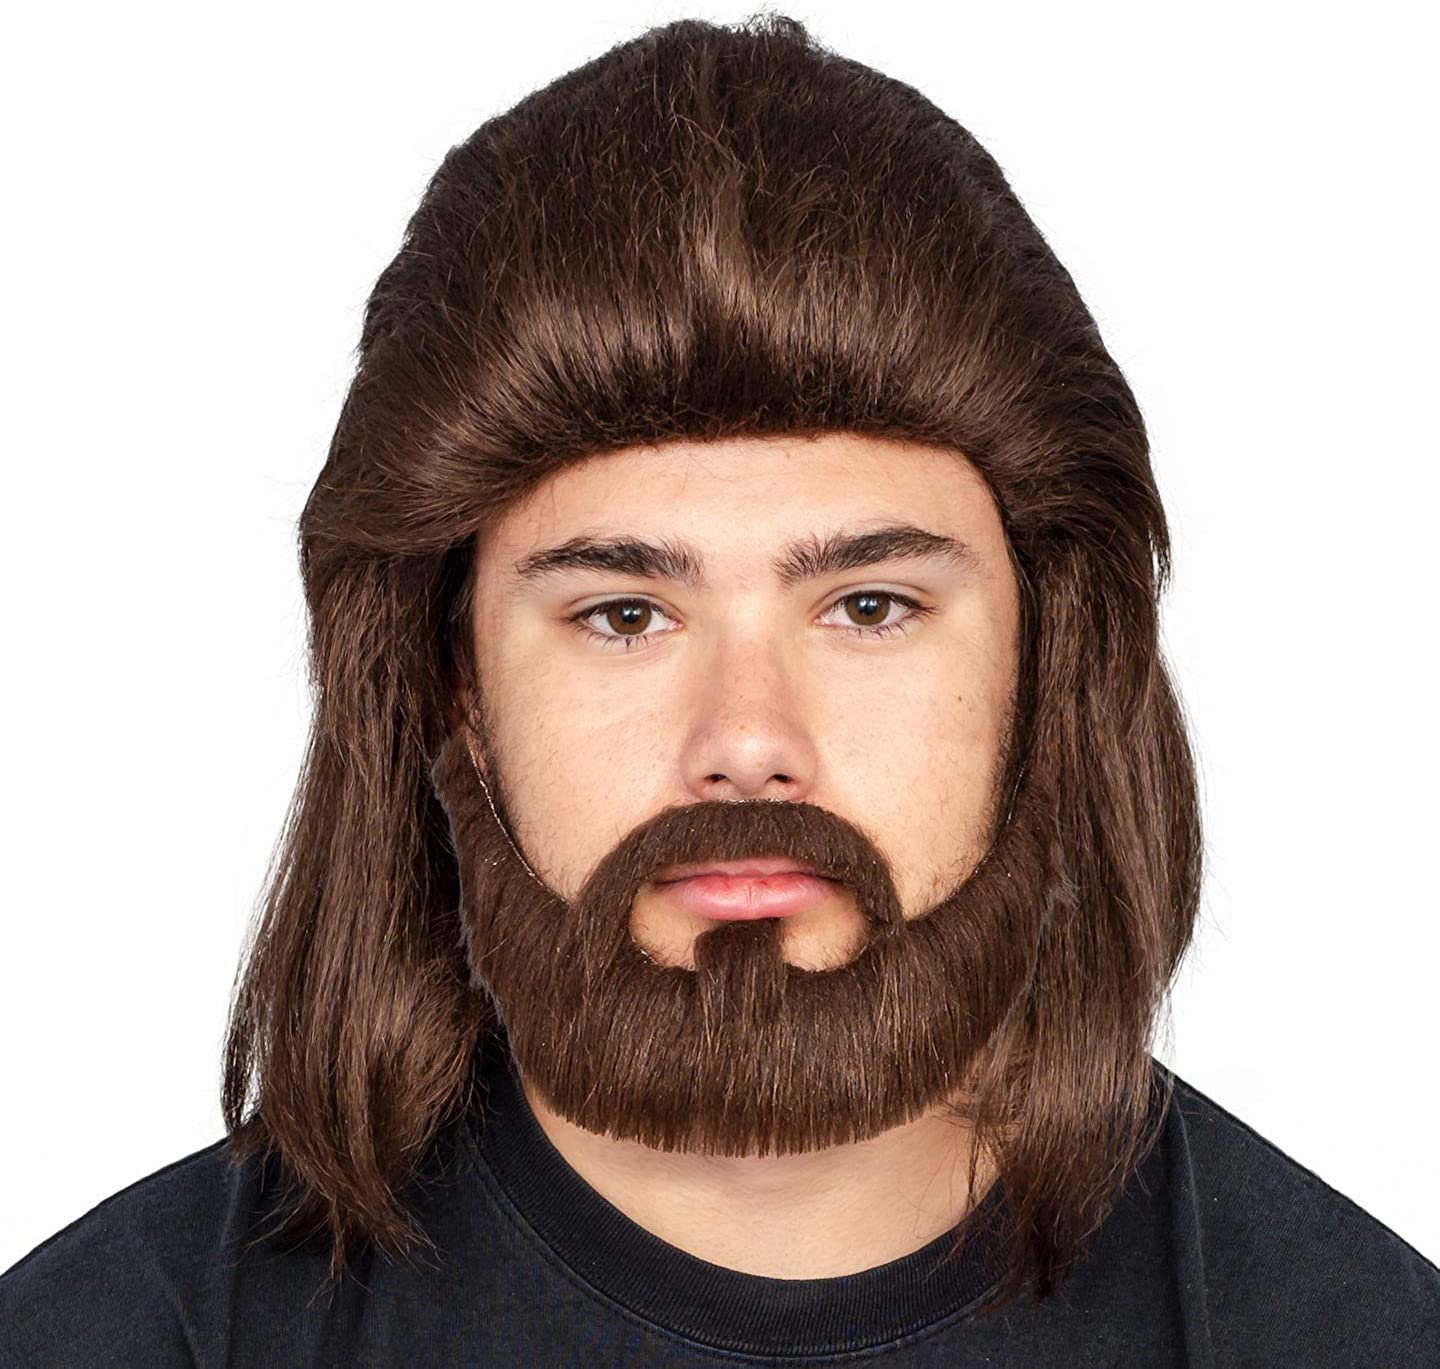 Adult Halloween Costume Accessory Deluxe Dark Wig and Beard Set Brown